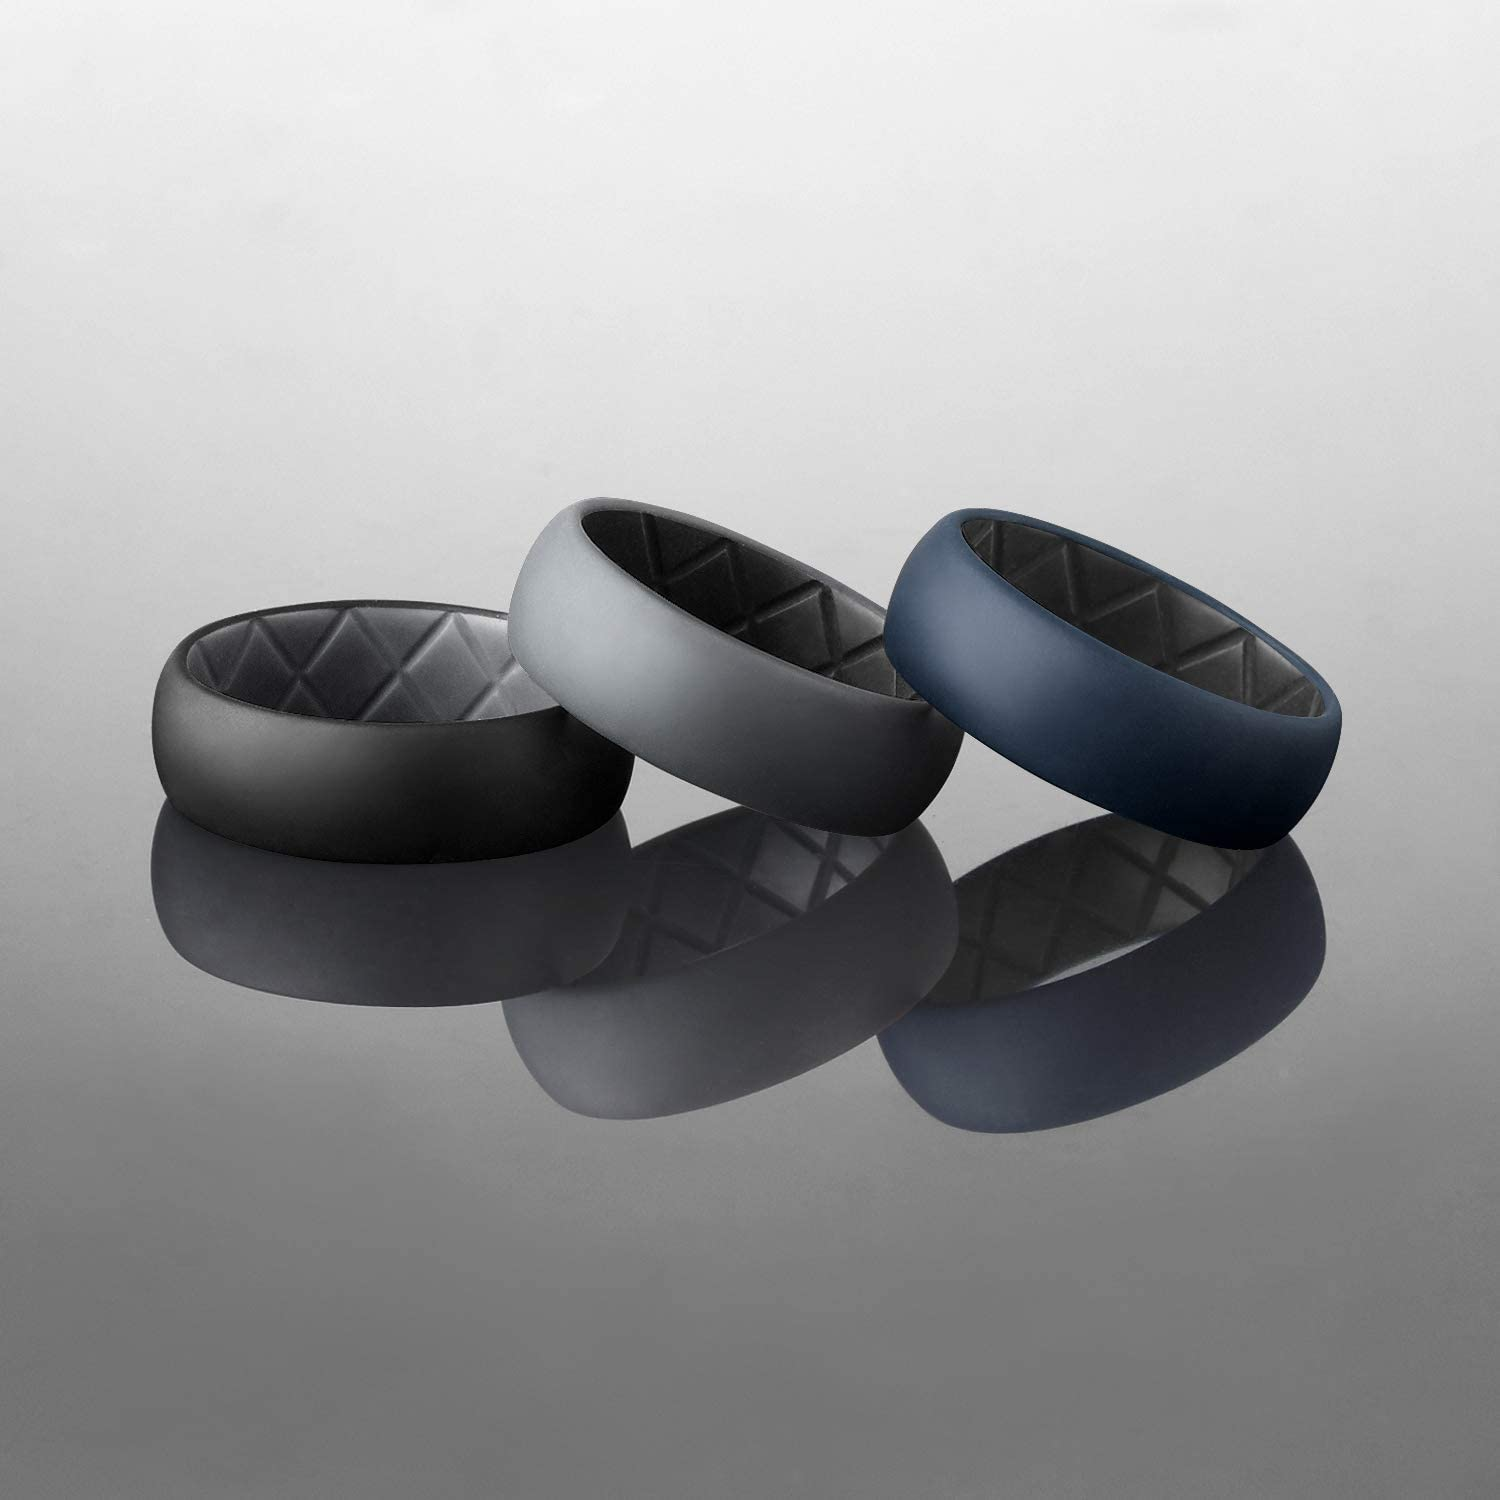 Crossfit Workout Two-Color Ring Breathable Mens Rubber Wedding Bands Egnaro Silicone Wedding Ring for Men Size7 8 9 10 11 12 13